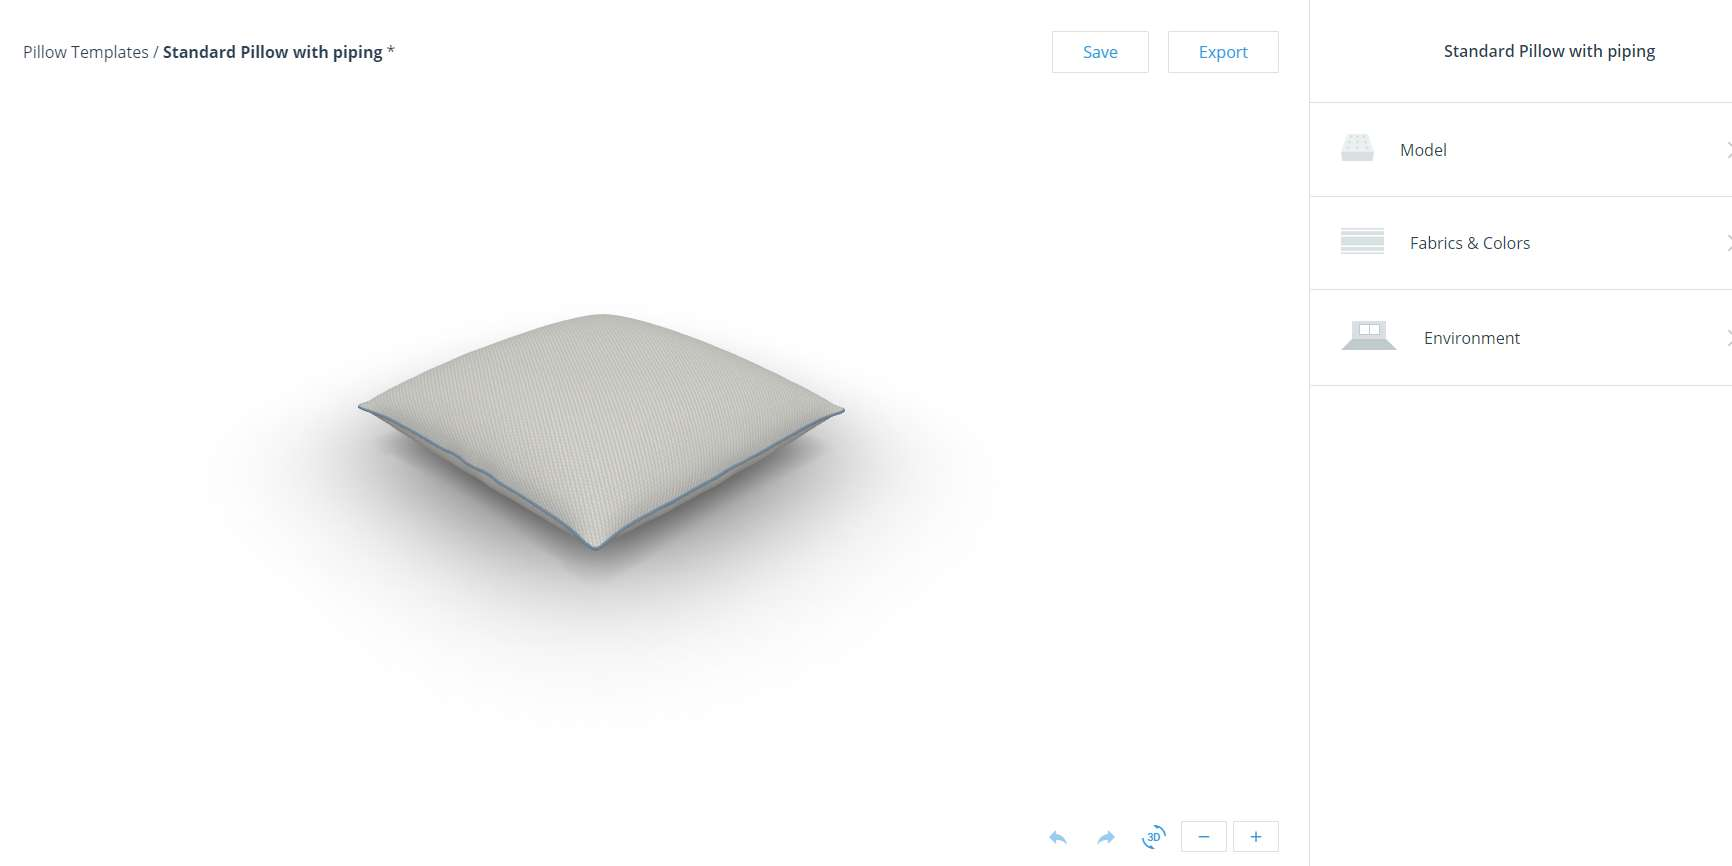 3D PILLOW CONFIGURATOR - Create pillows online!